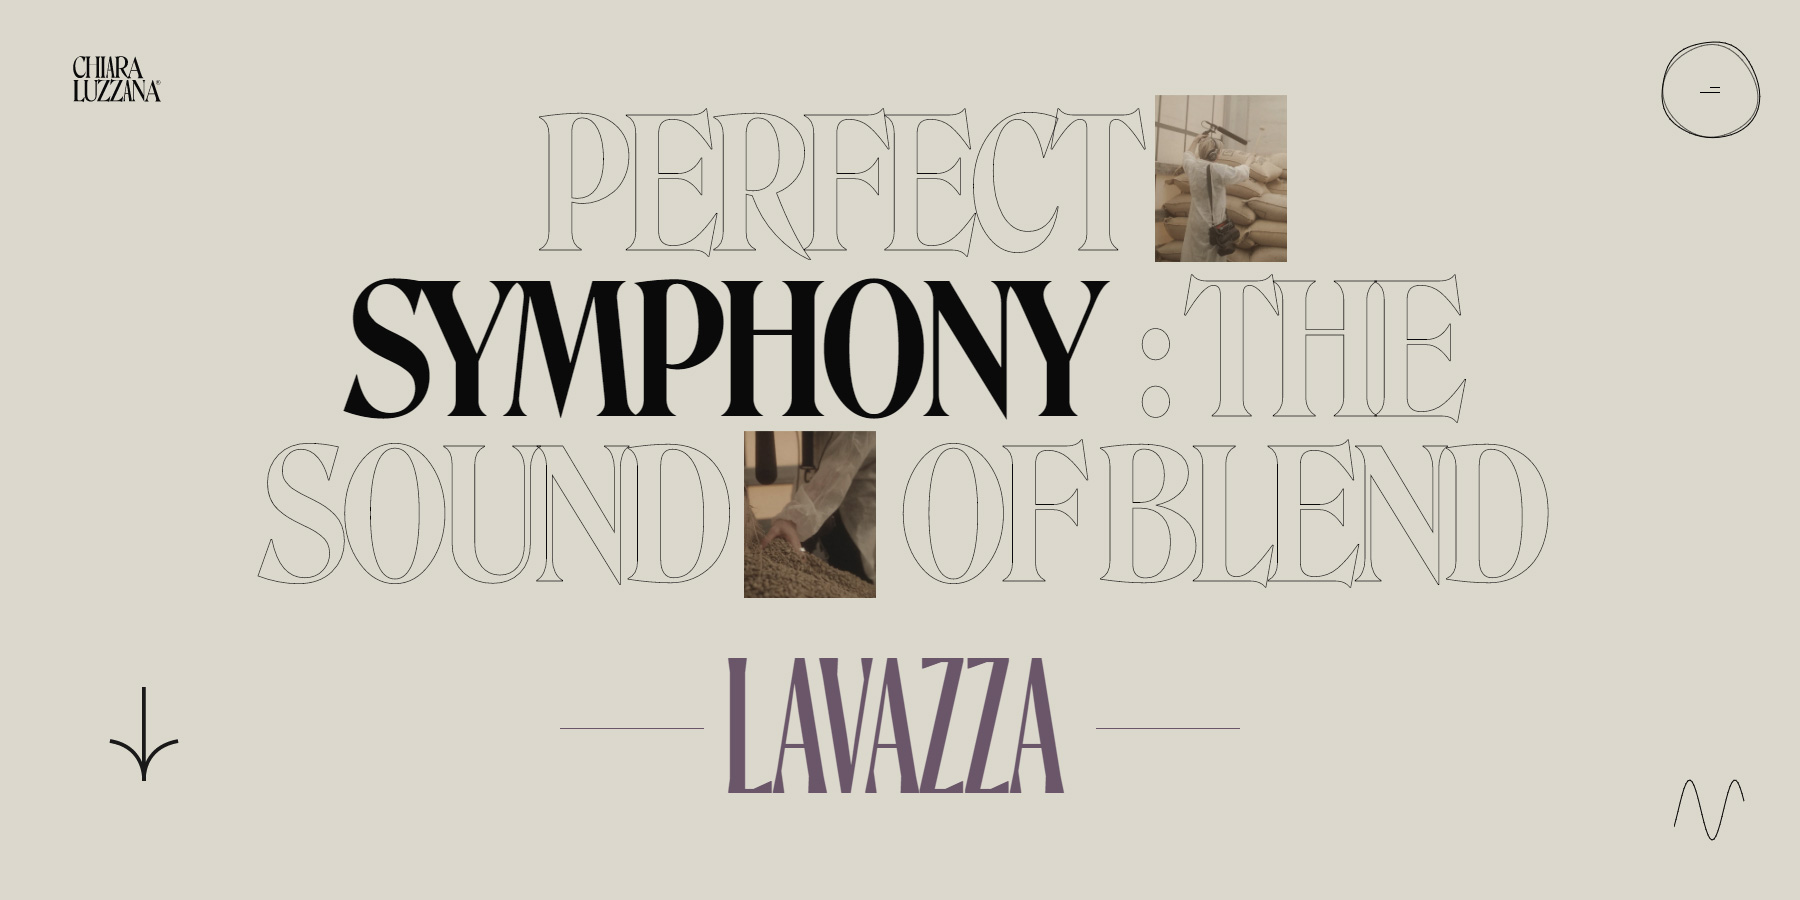 Chiara Luzzana – Sound Designer - Website of the Day